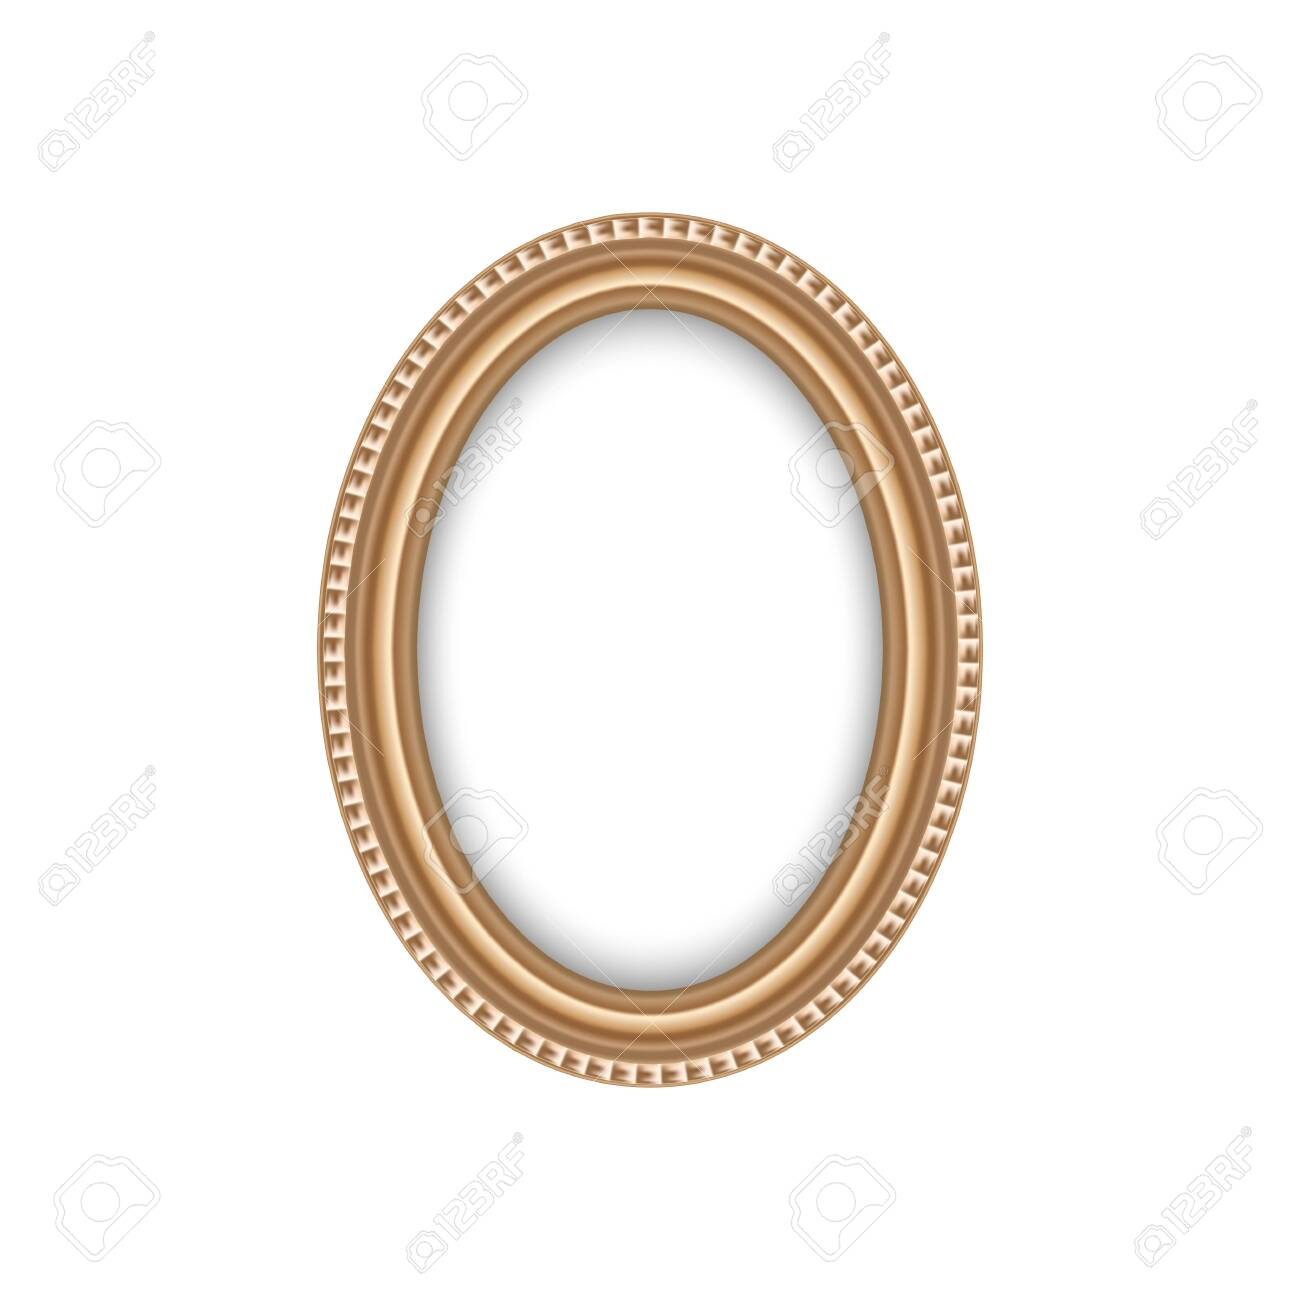 Oval antique frame isolated blank border. - 144409385